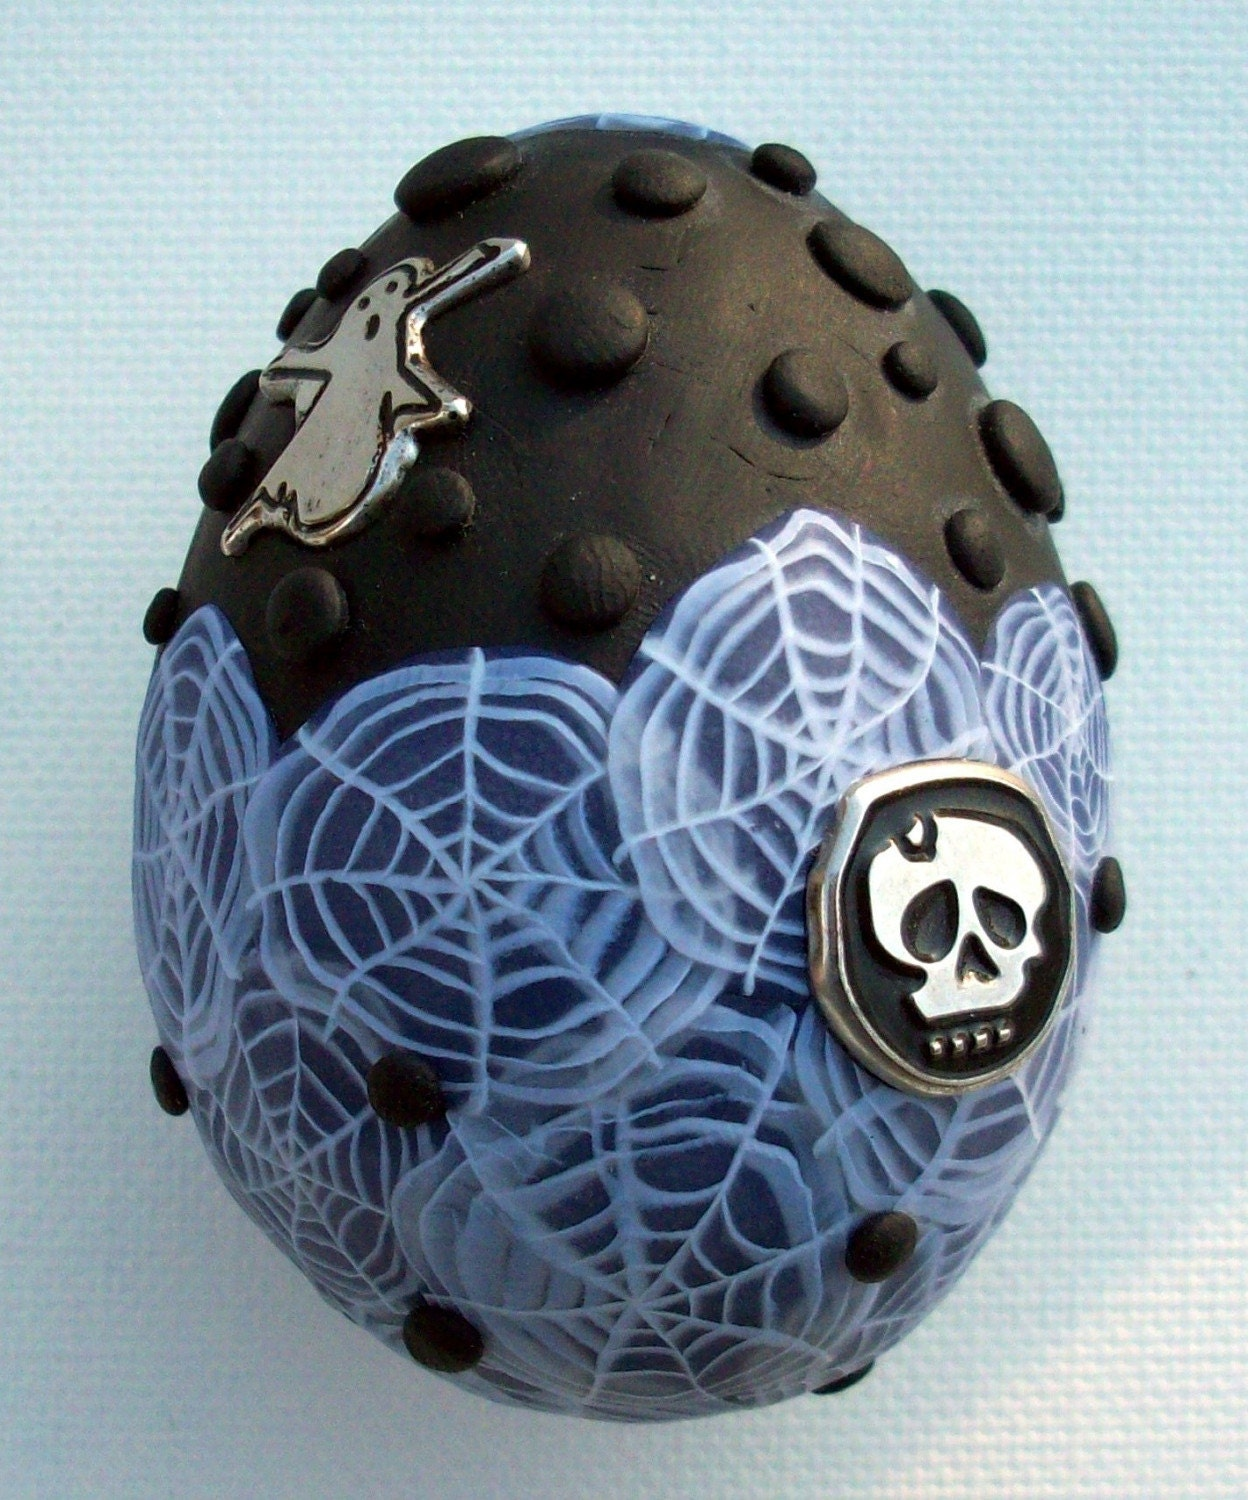 Cobwebs and Ghosts Polymer clay Egg Ornament